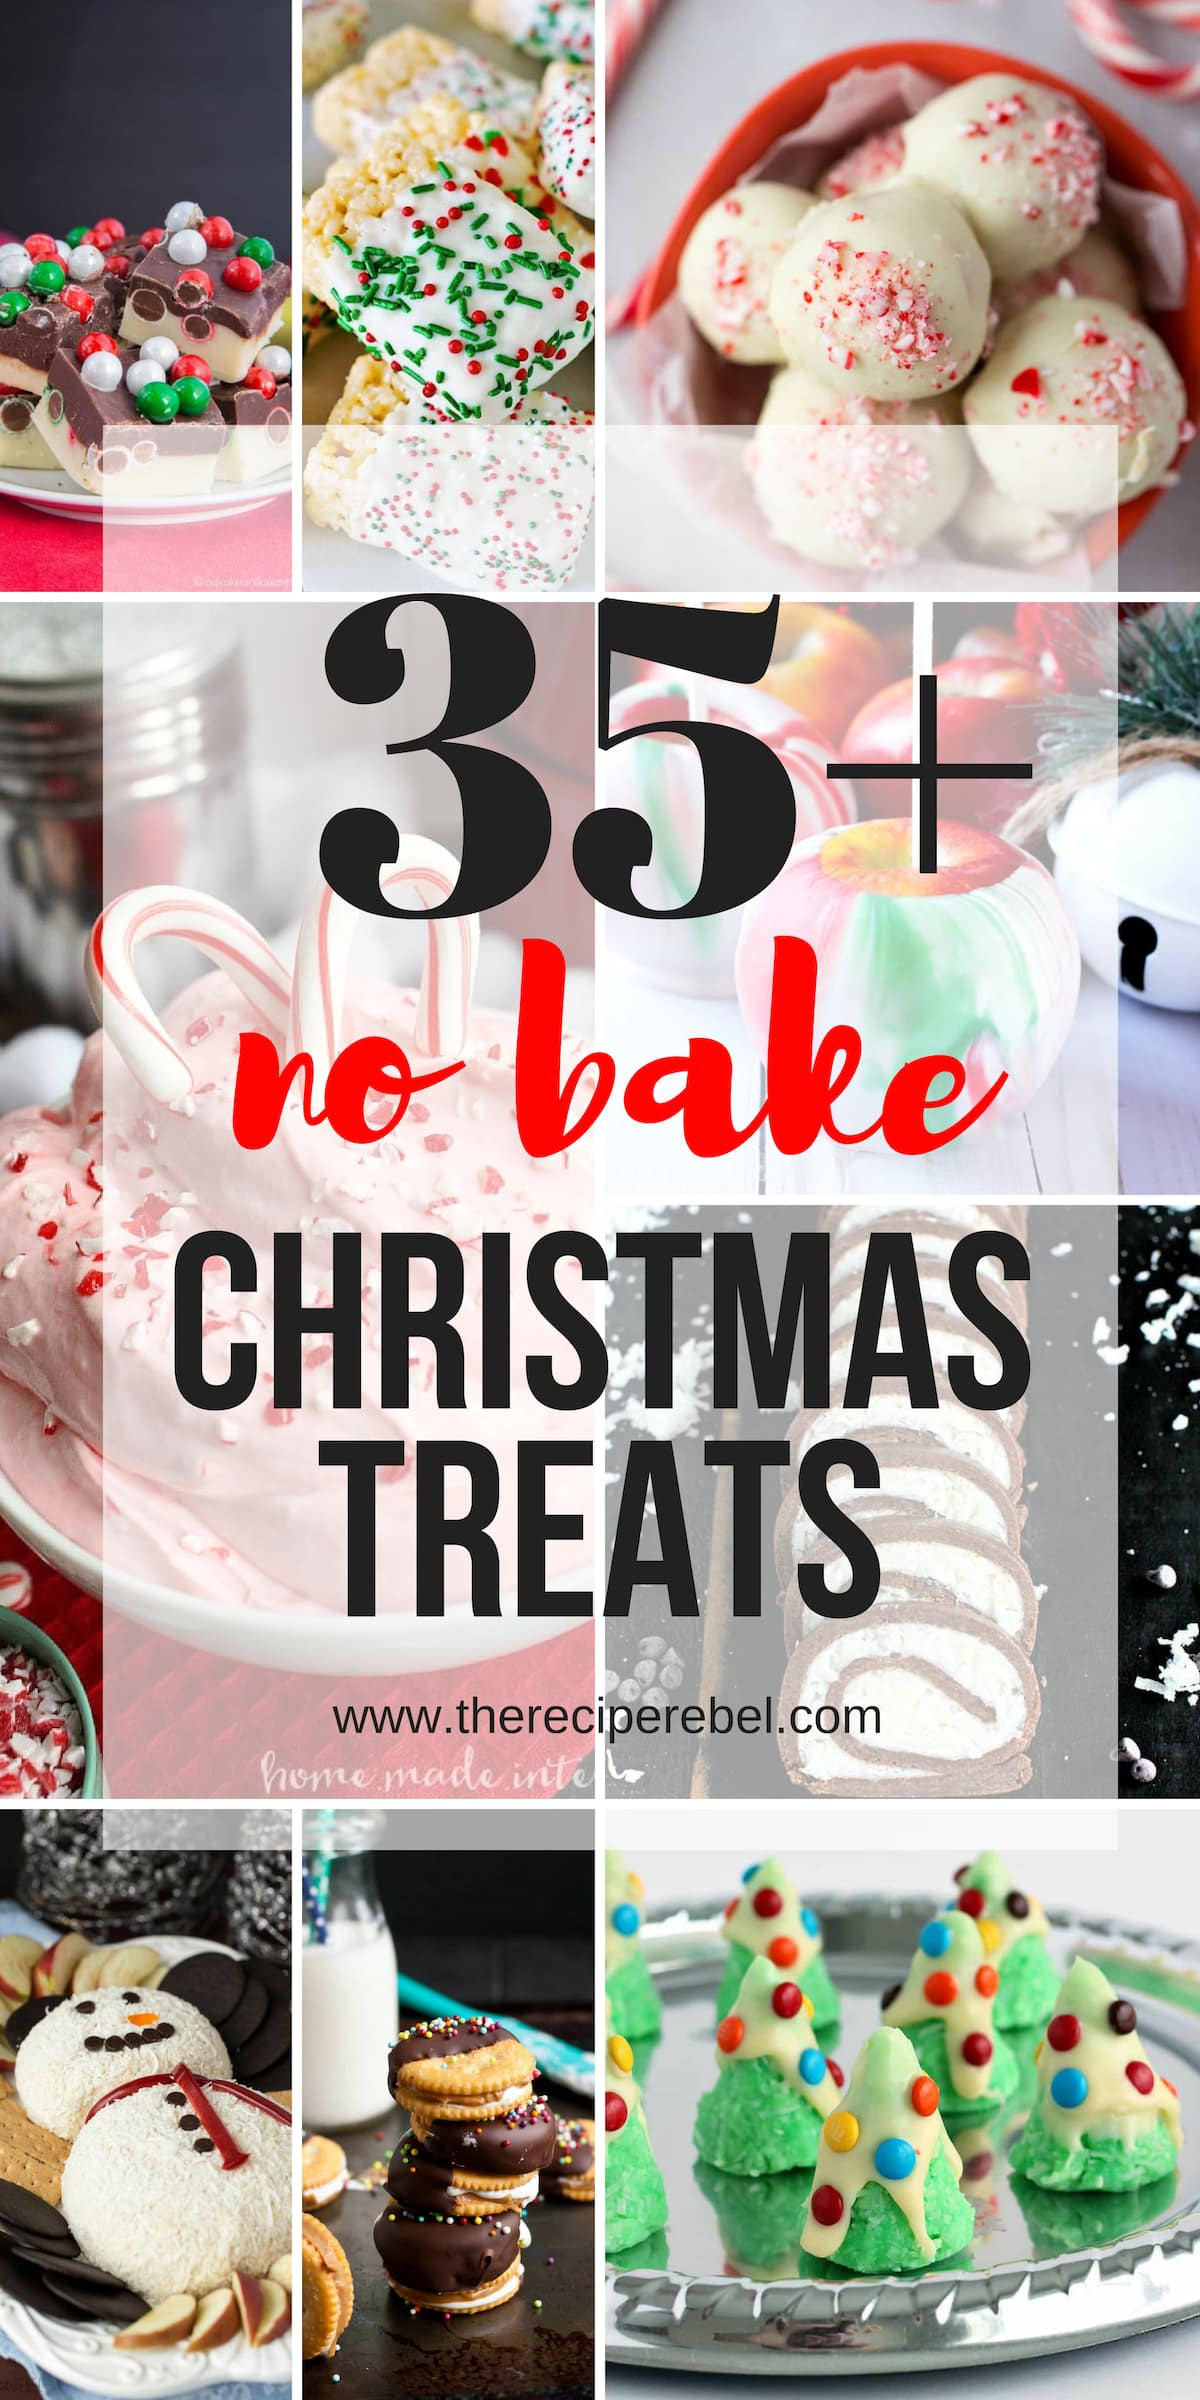 Easy Bake Christmas Cookies  25 Easy Christmas Treats no bake Christmas cookies